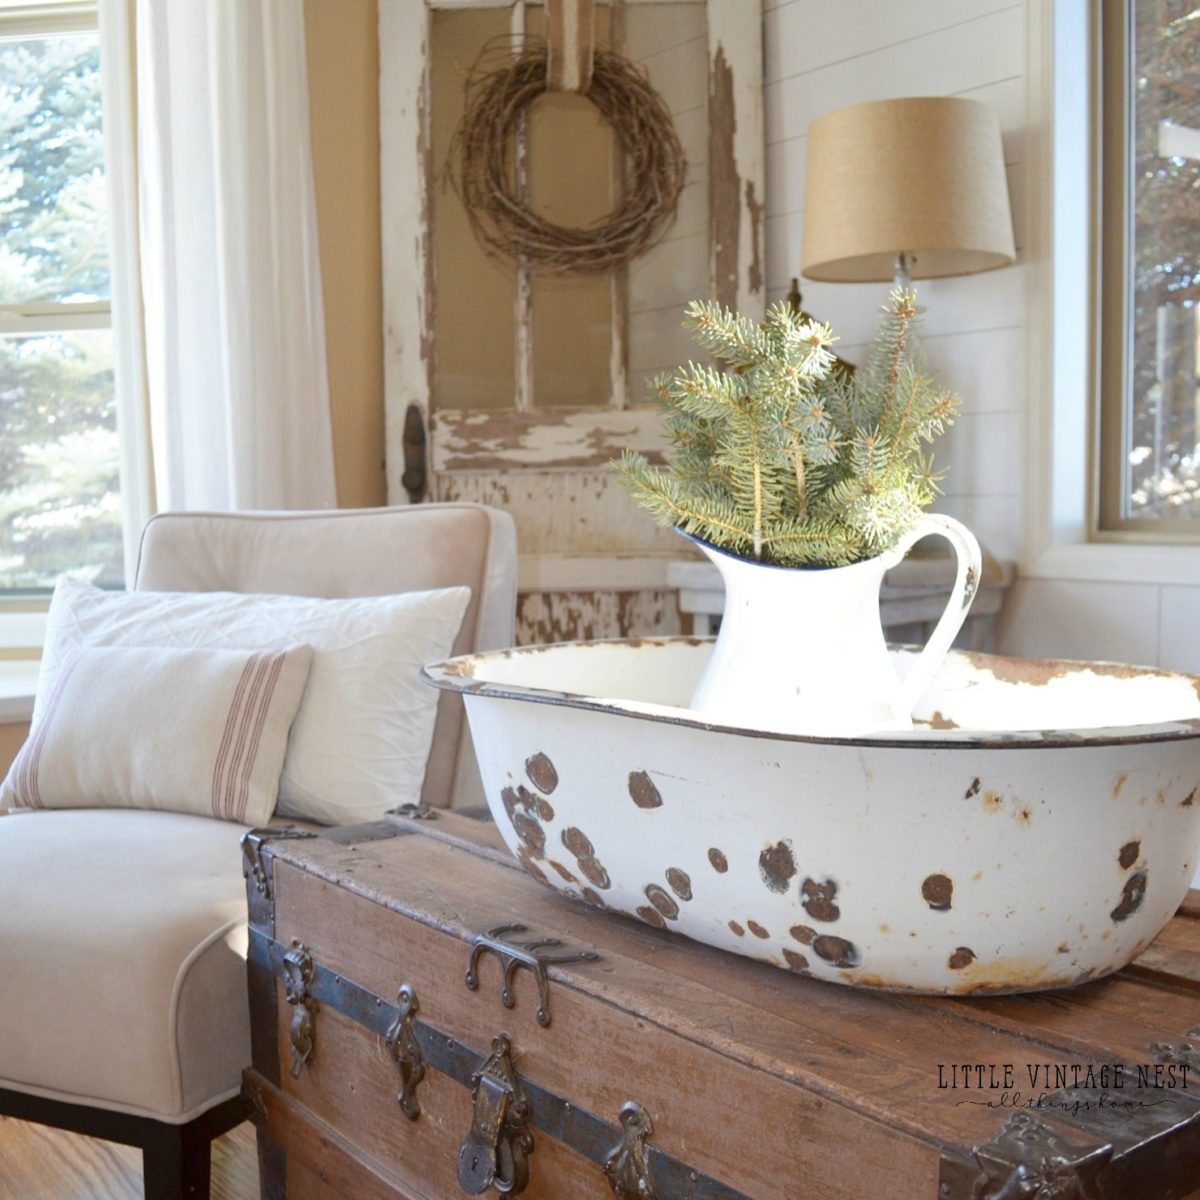 Winter decor 101 blog hop little vintage nest for Home decor 101